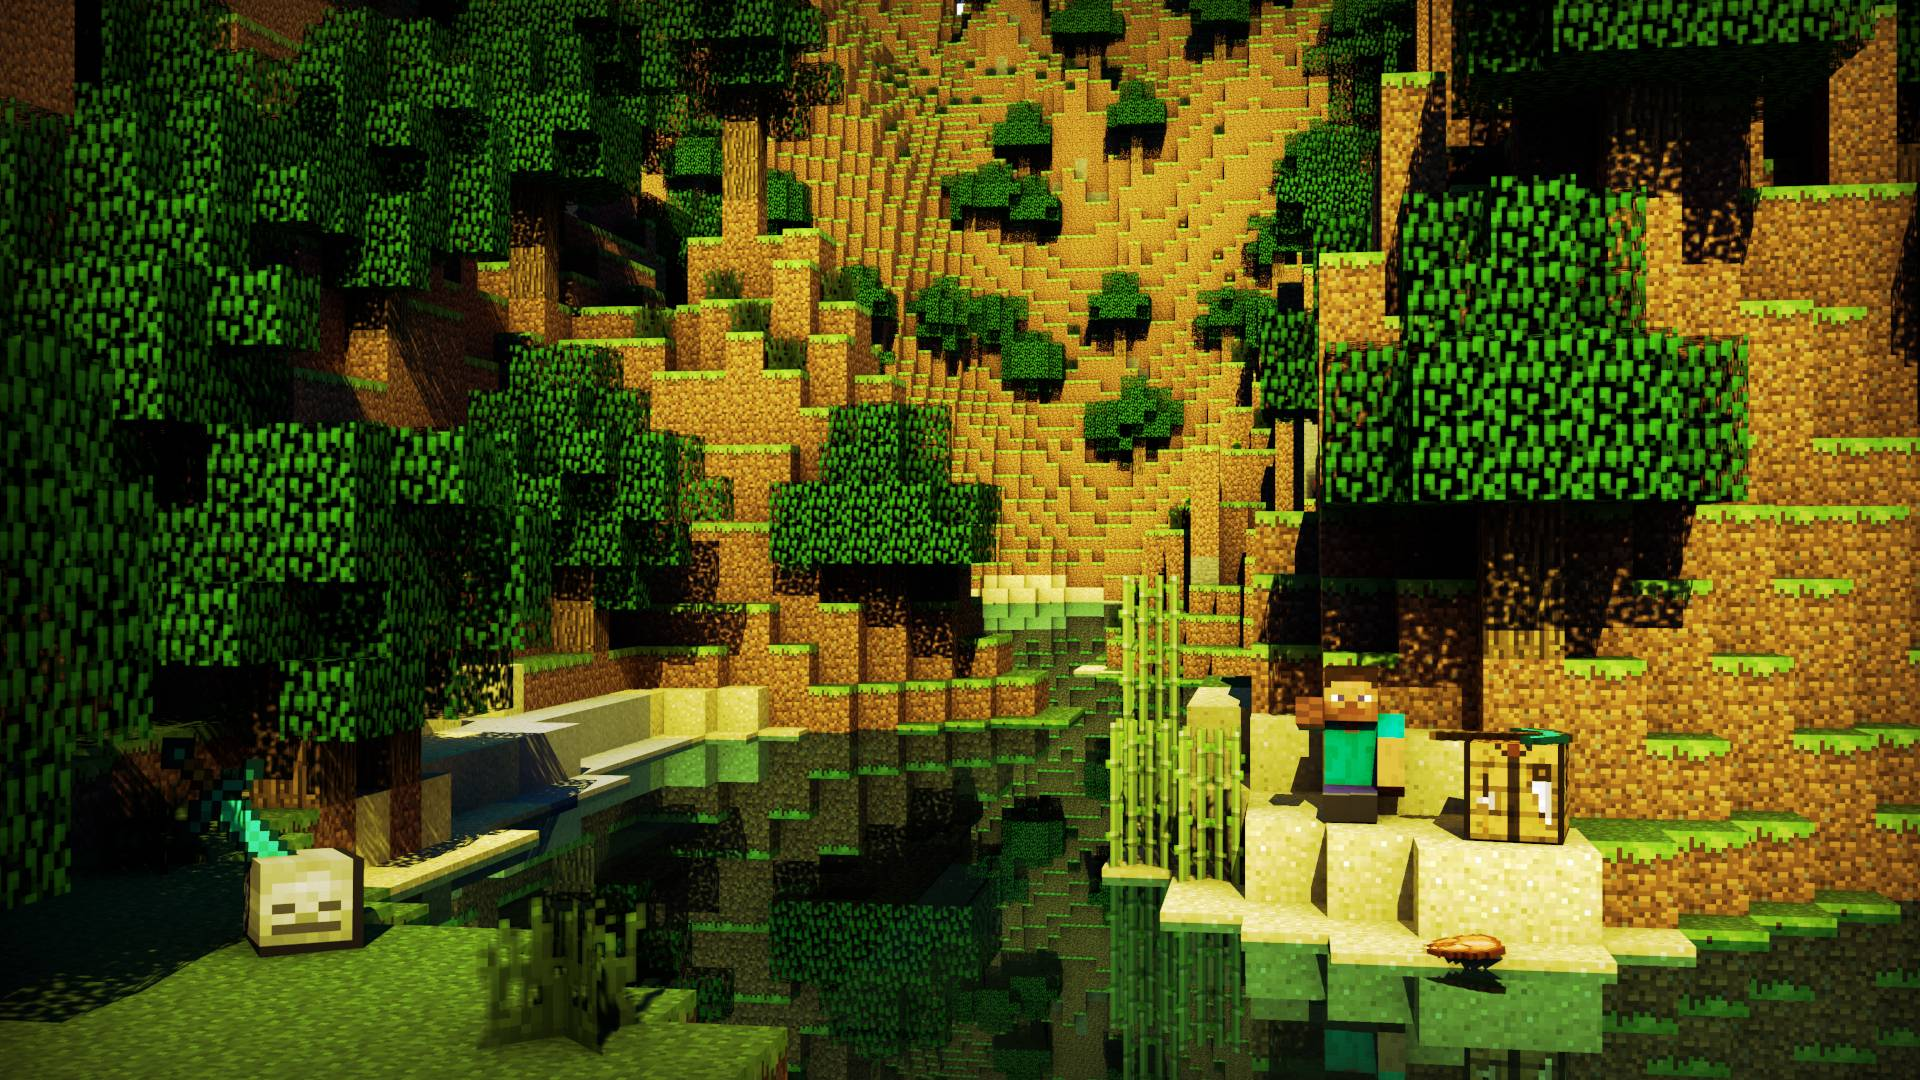 4k Ultra Hd Minecraft By Lynnette Lambole